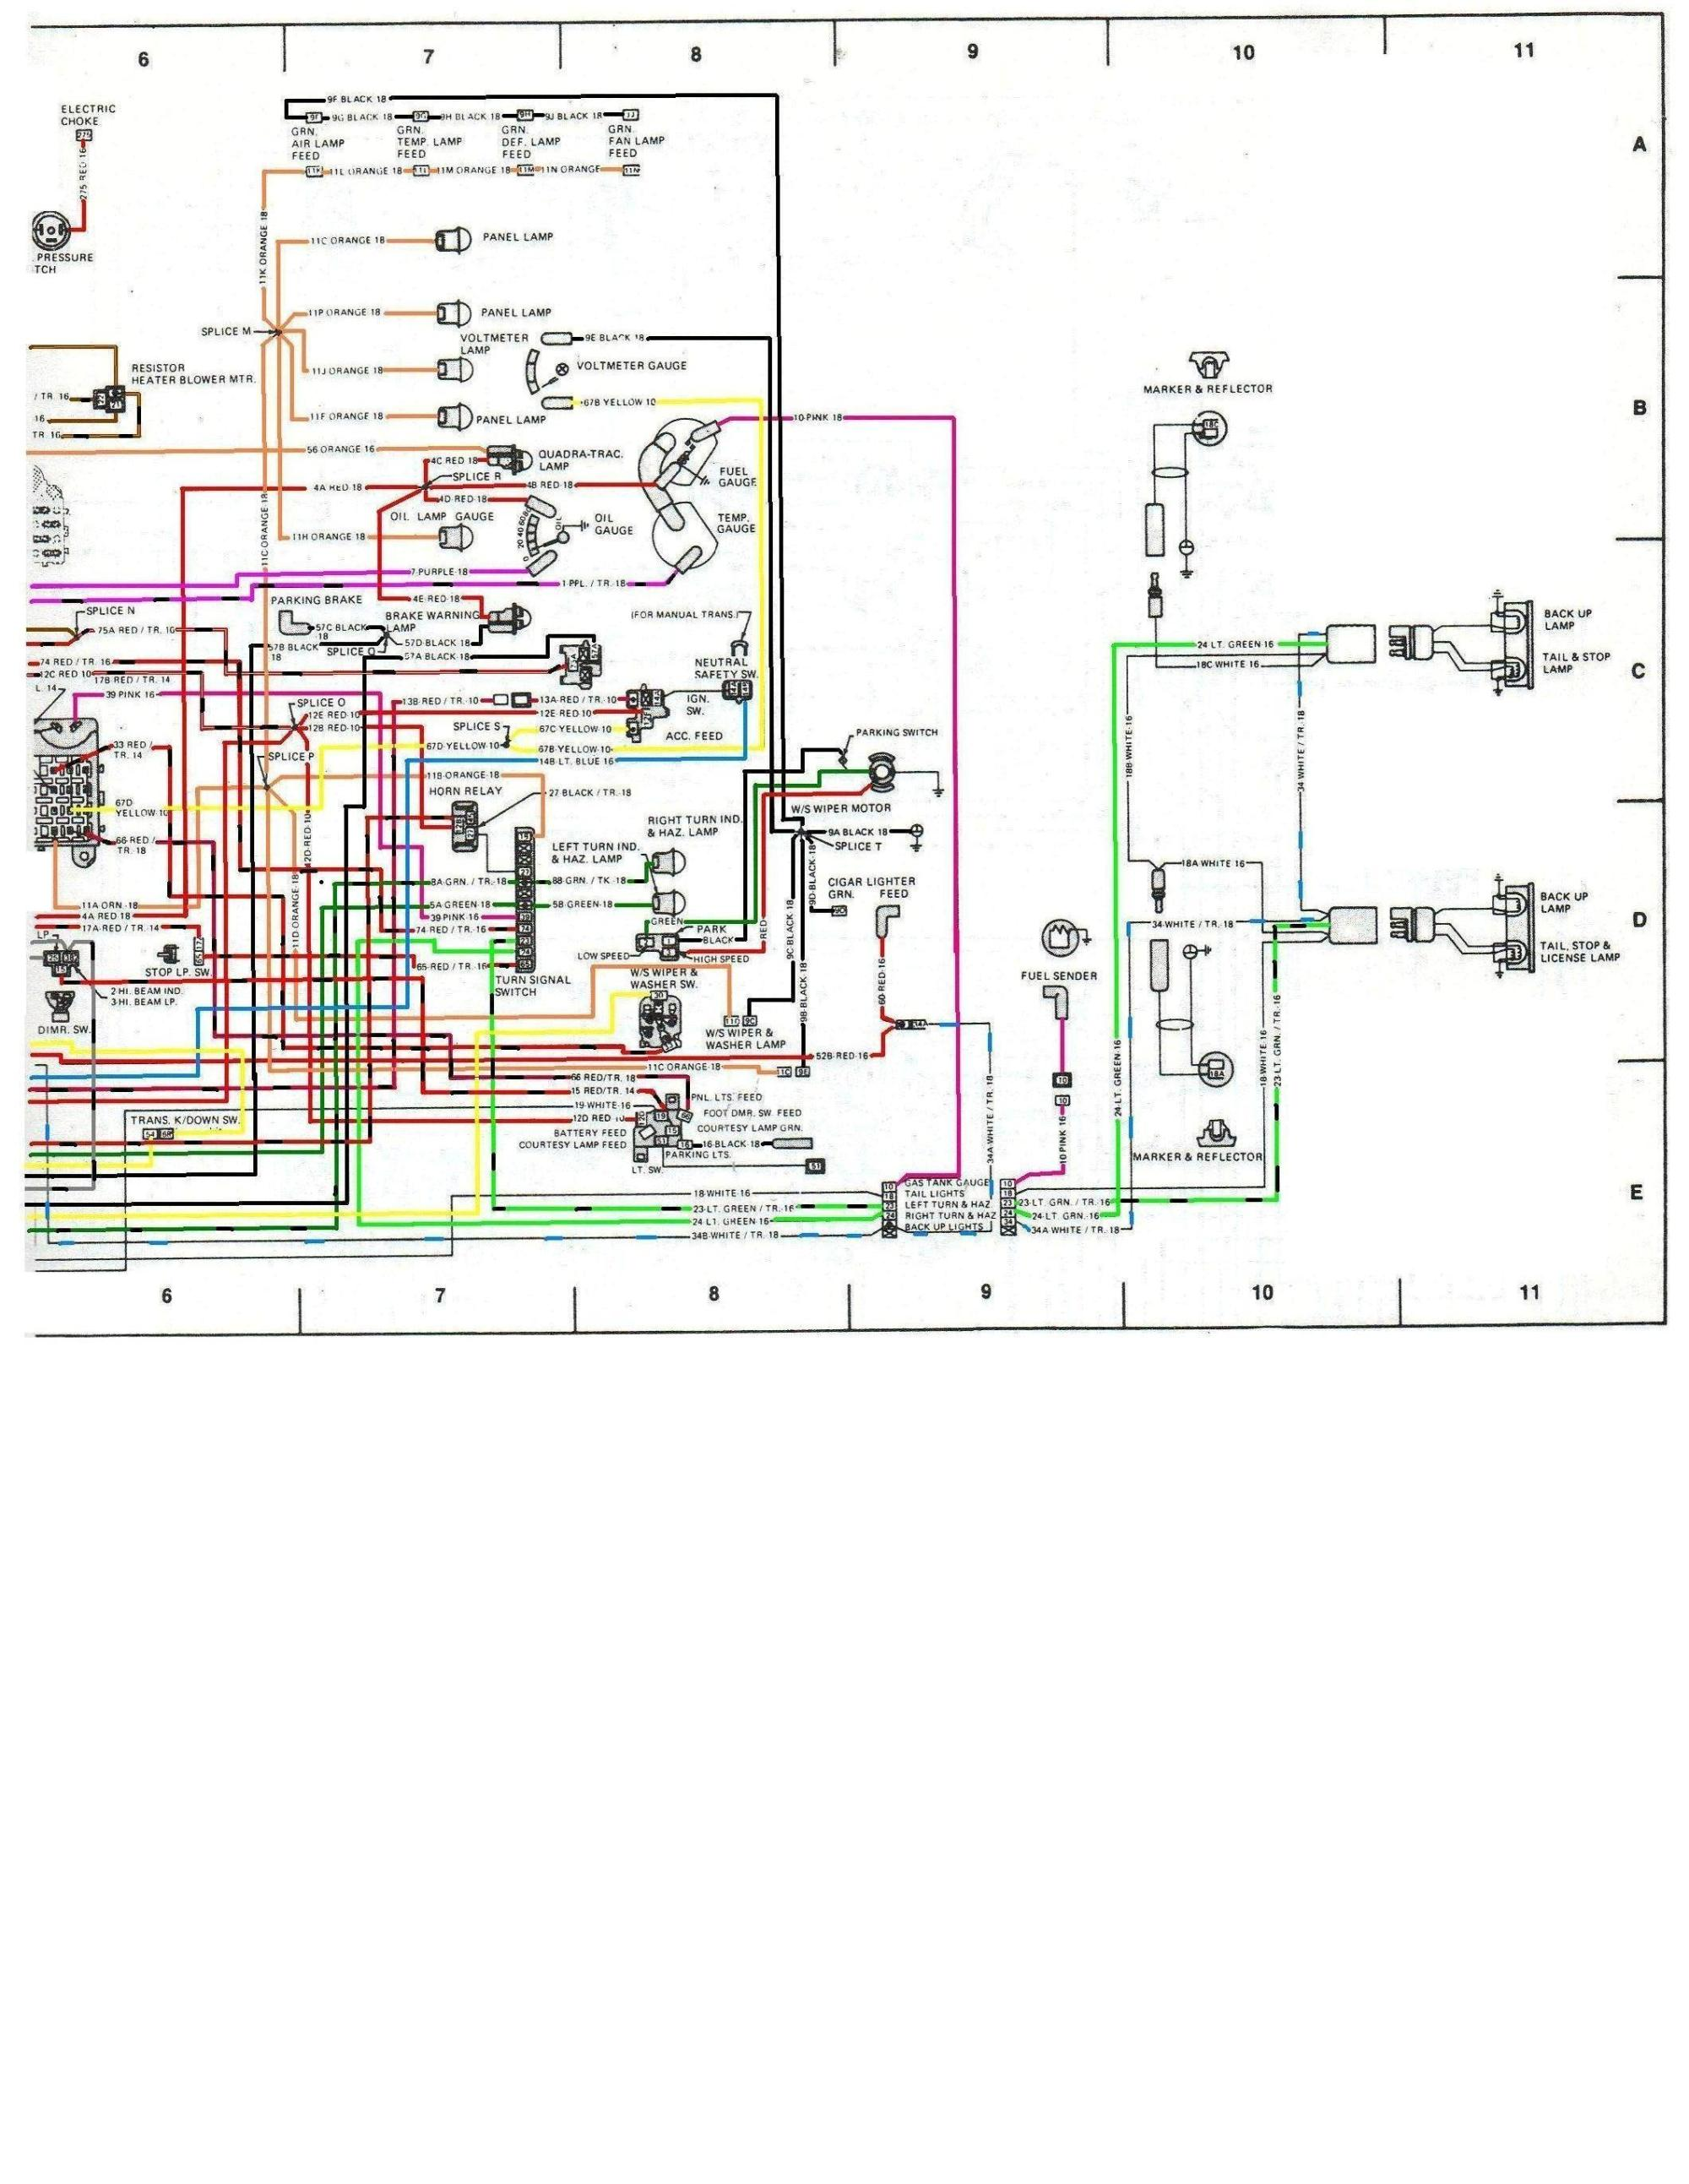 hight resolution of jeep cj7 firewall wiring harness color diagram wiring diagram yer cj7 firewall wiring plug diagram